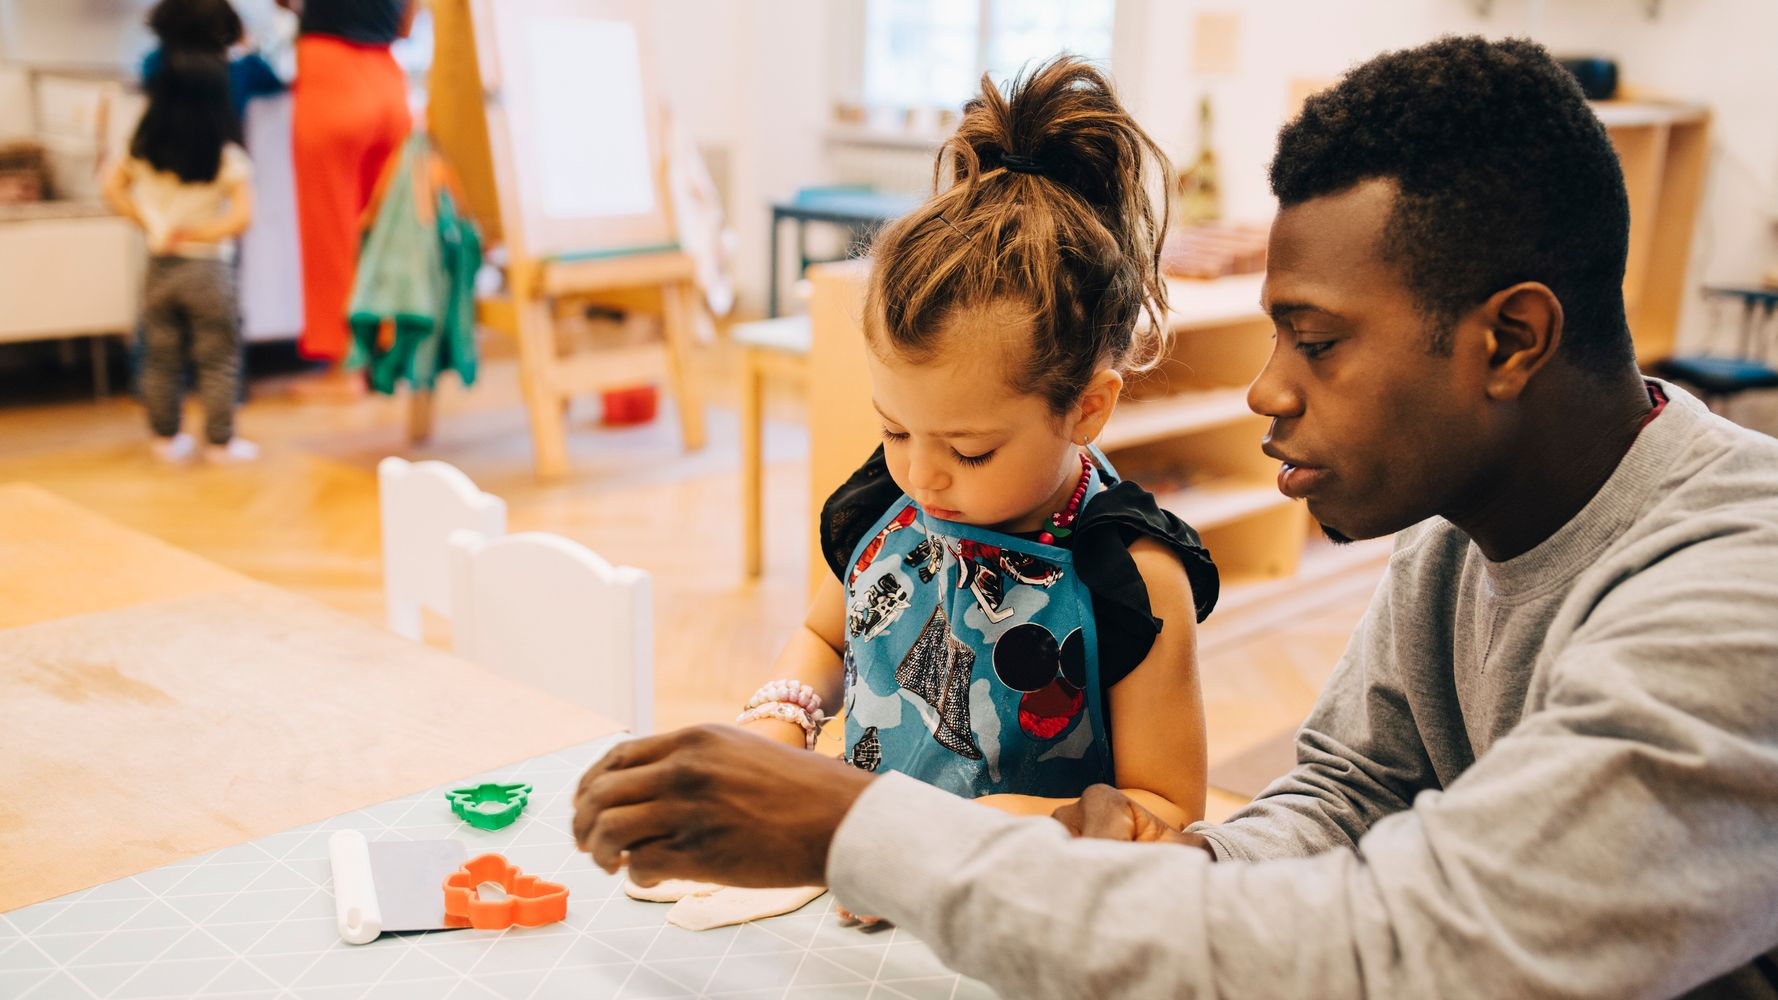 Why Is The Cost Of Daycare In Canada So High?